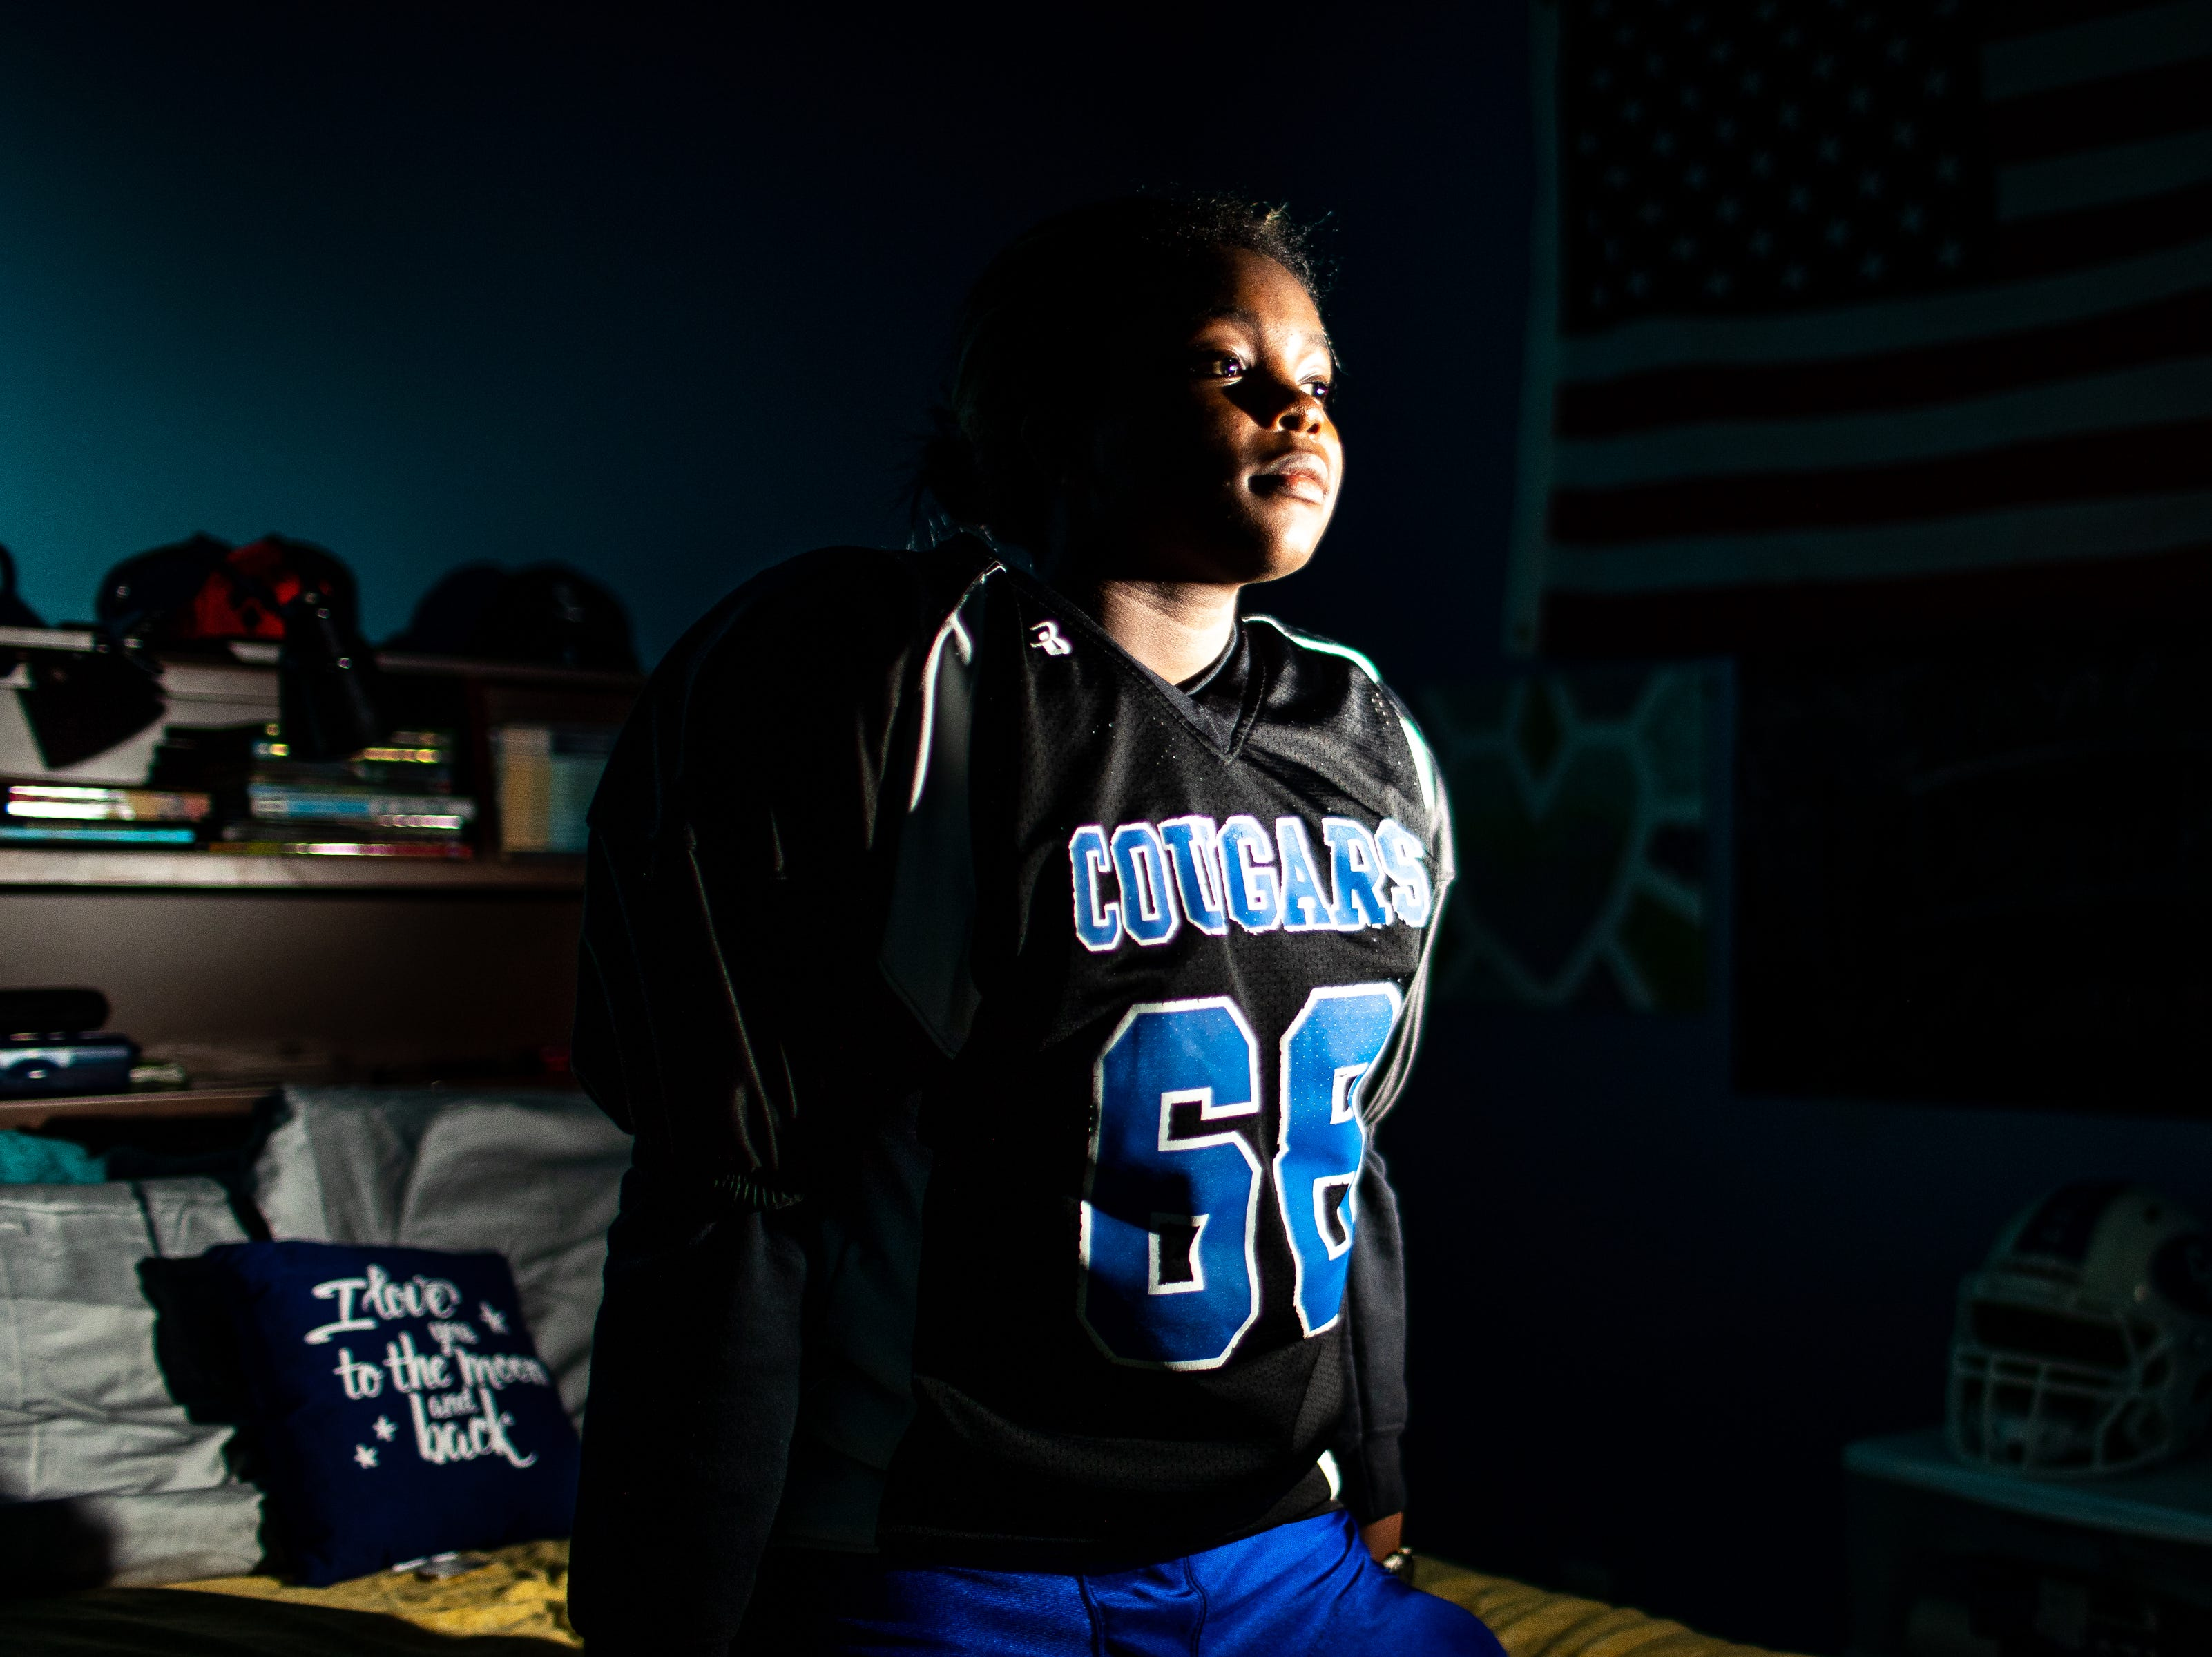 Clarksville Academy Cougars nose guard Madisen Bryant, 13, poses for a portrait in their uniform at their home Friday, Nov. 16, 2018, in Clarksville, Tenn.